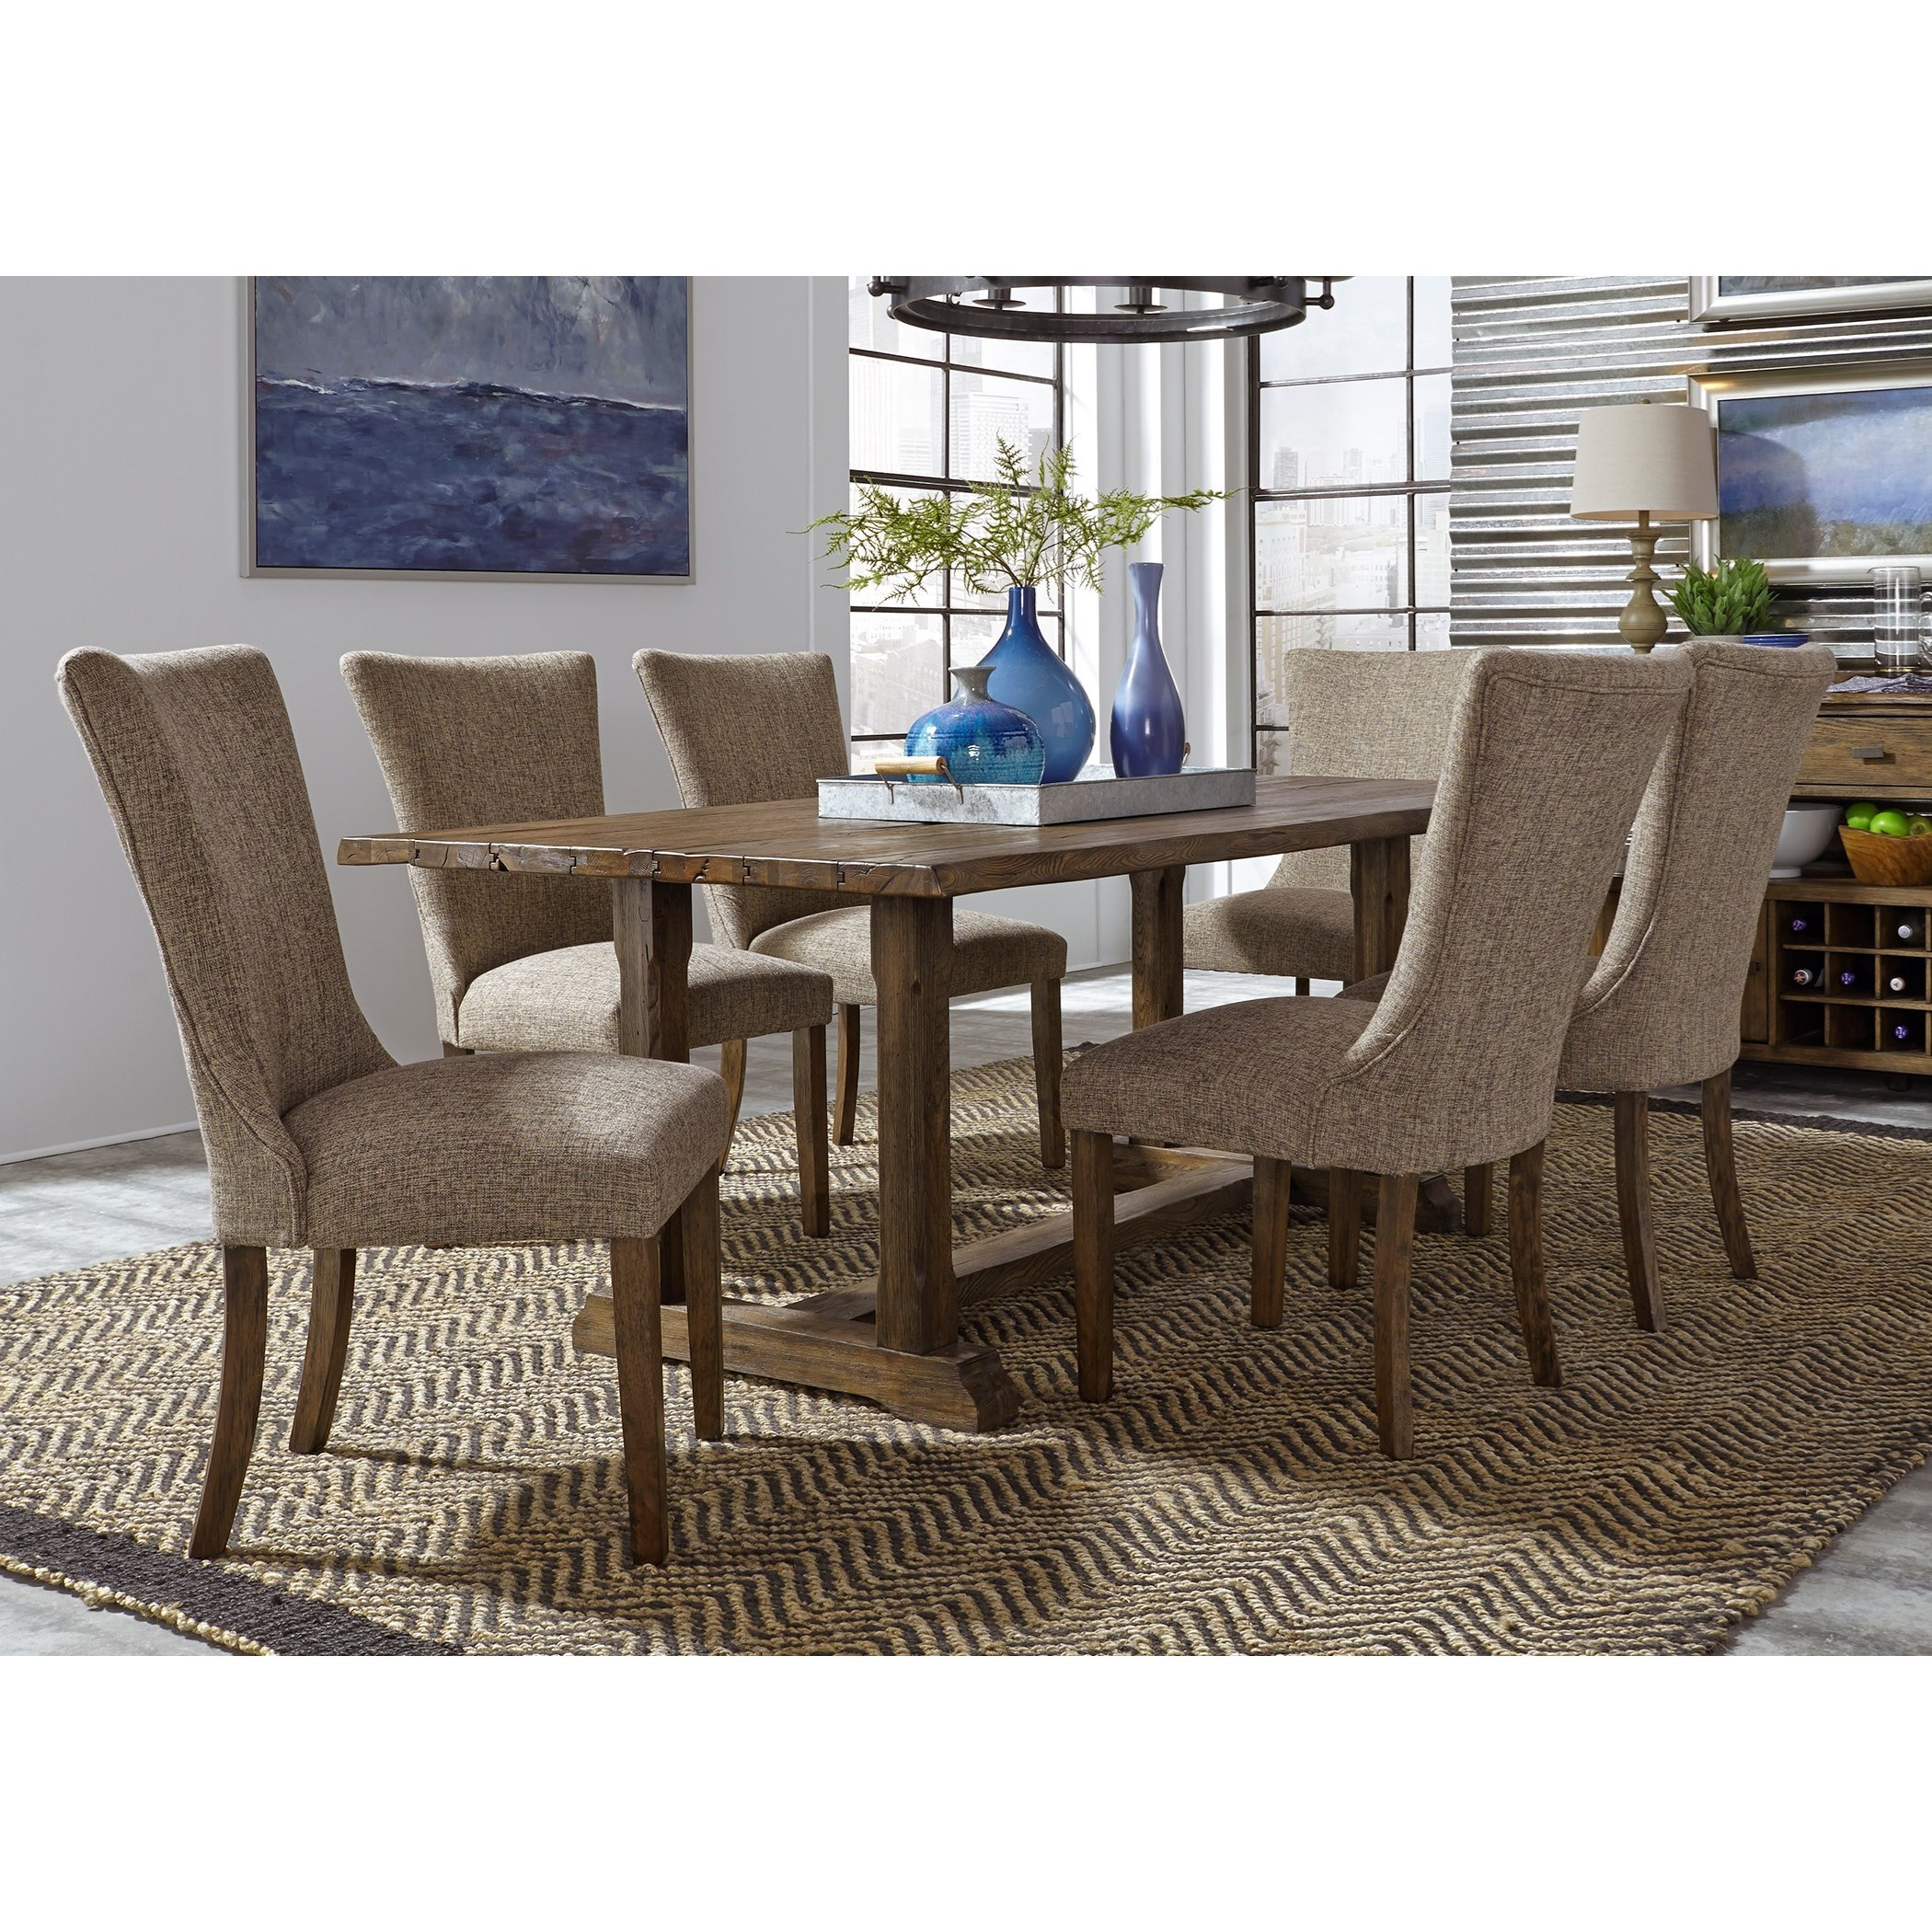 Liberty Furniture Havenbrook 7 Piece Trestle Dining Set   Item Number:  262 CD